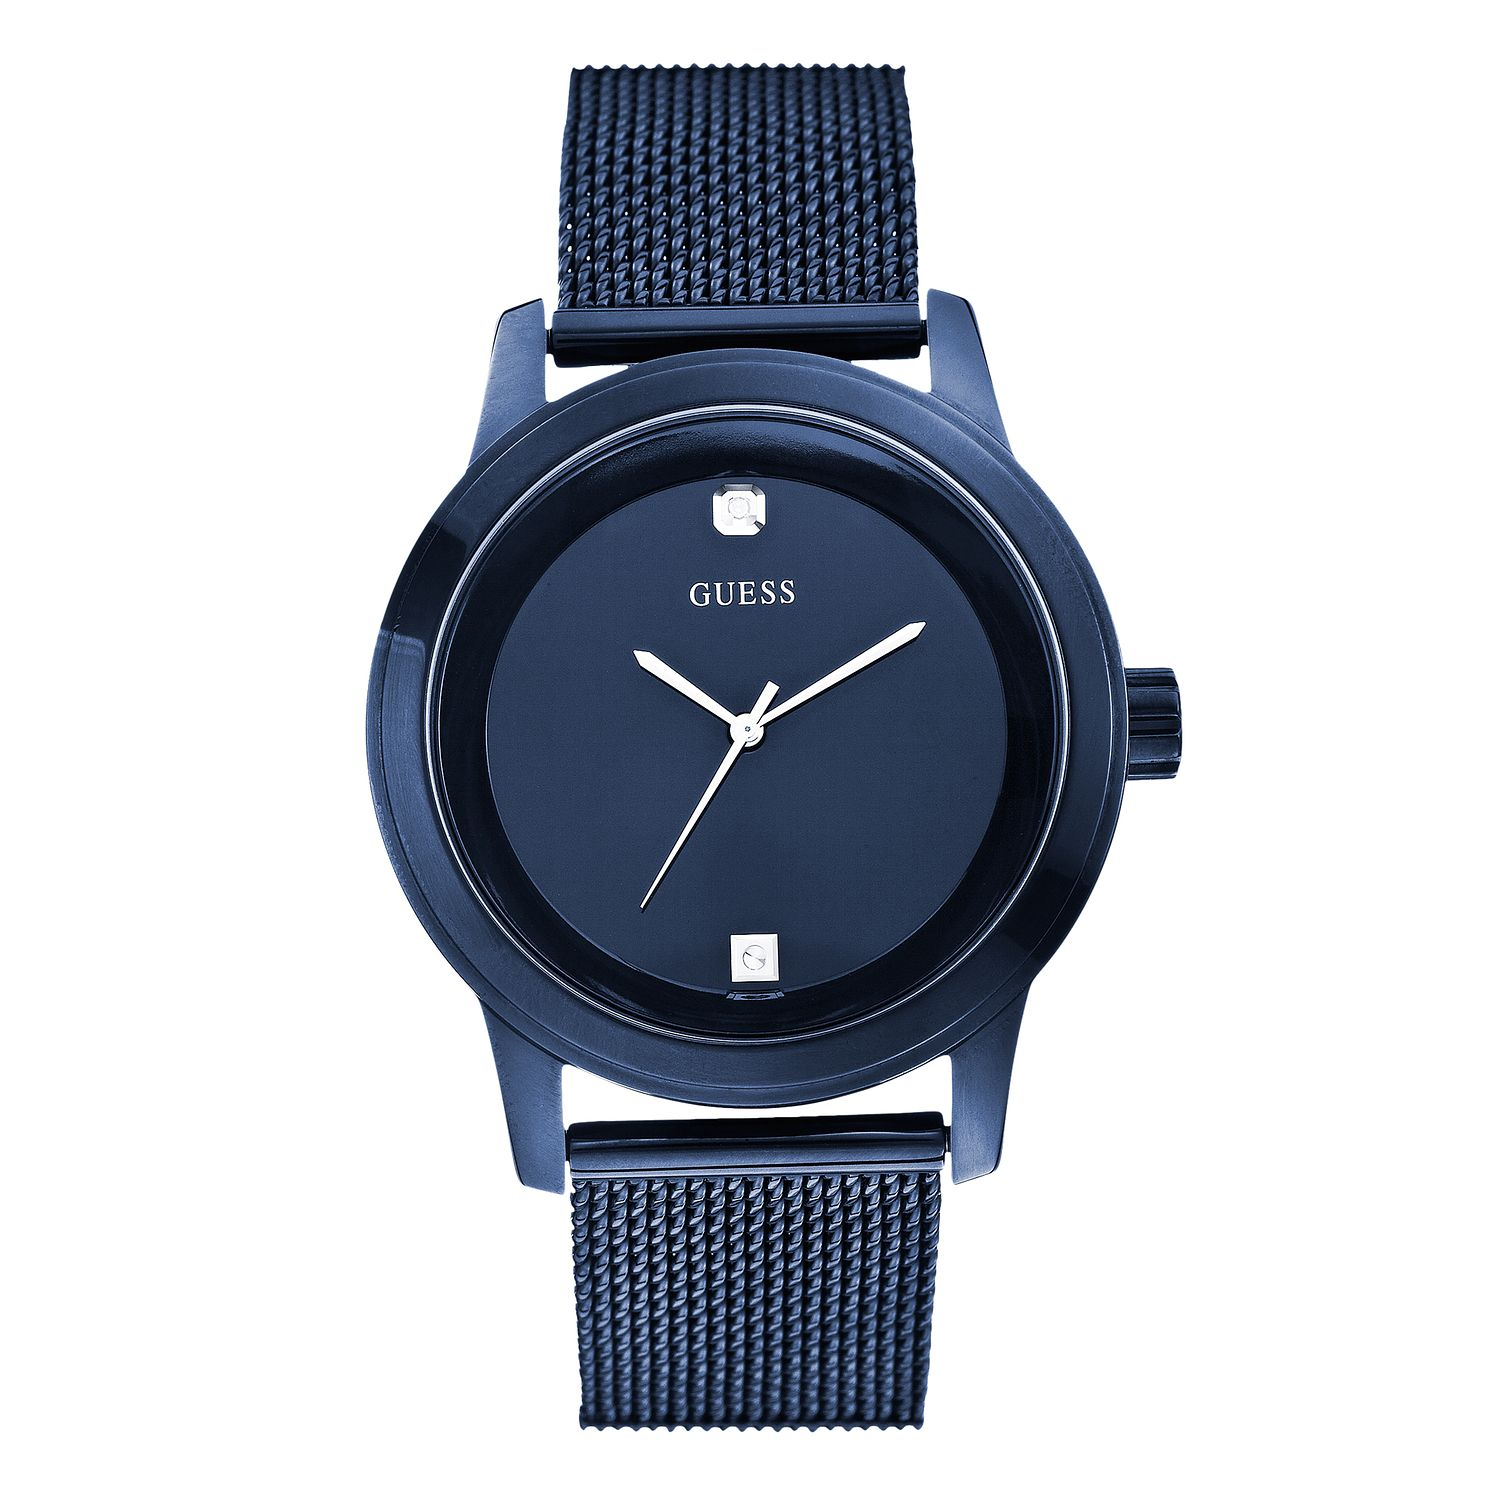 Guess Telescope Men's Blue IP Mesh Bracelet Watch - Product number 1160397